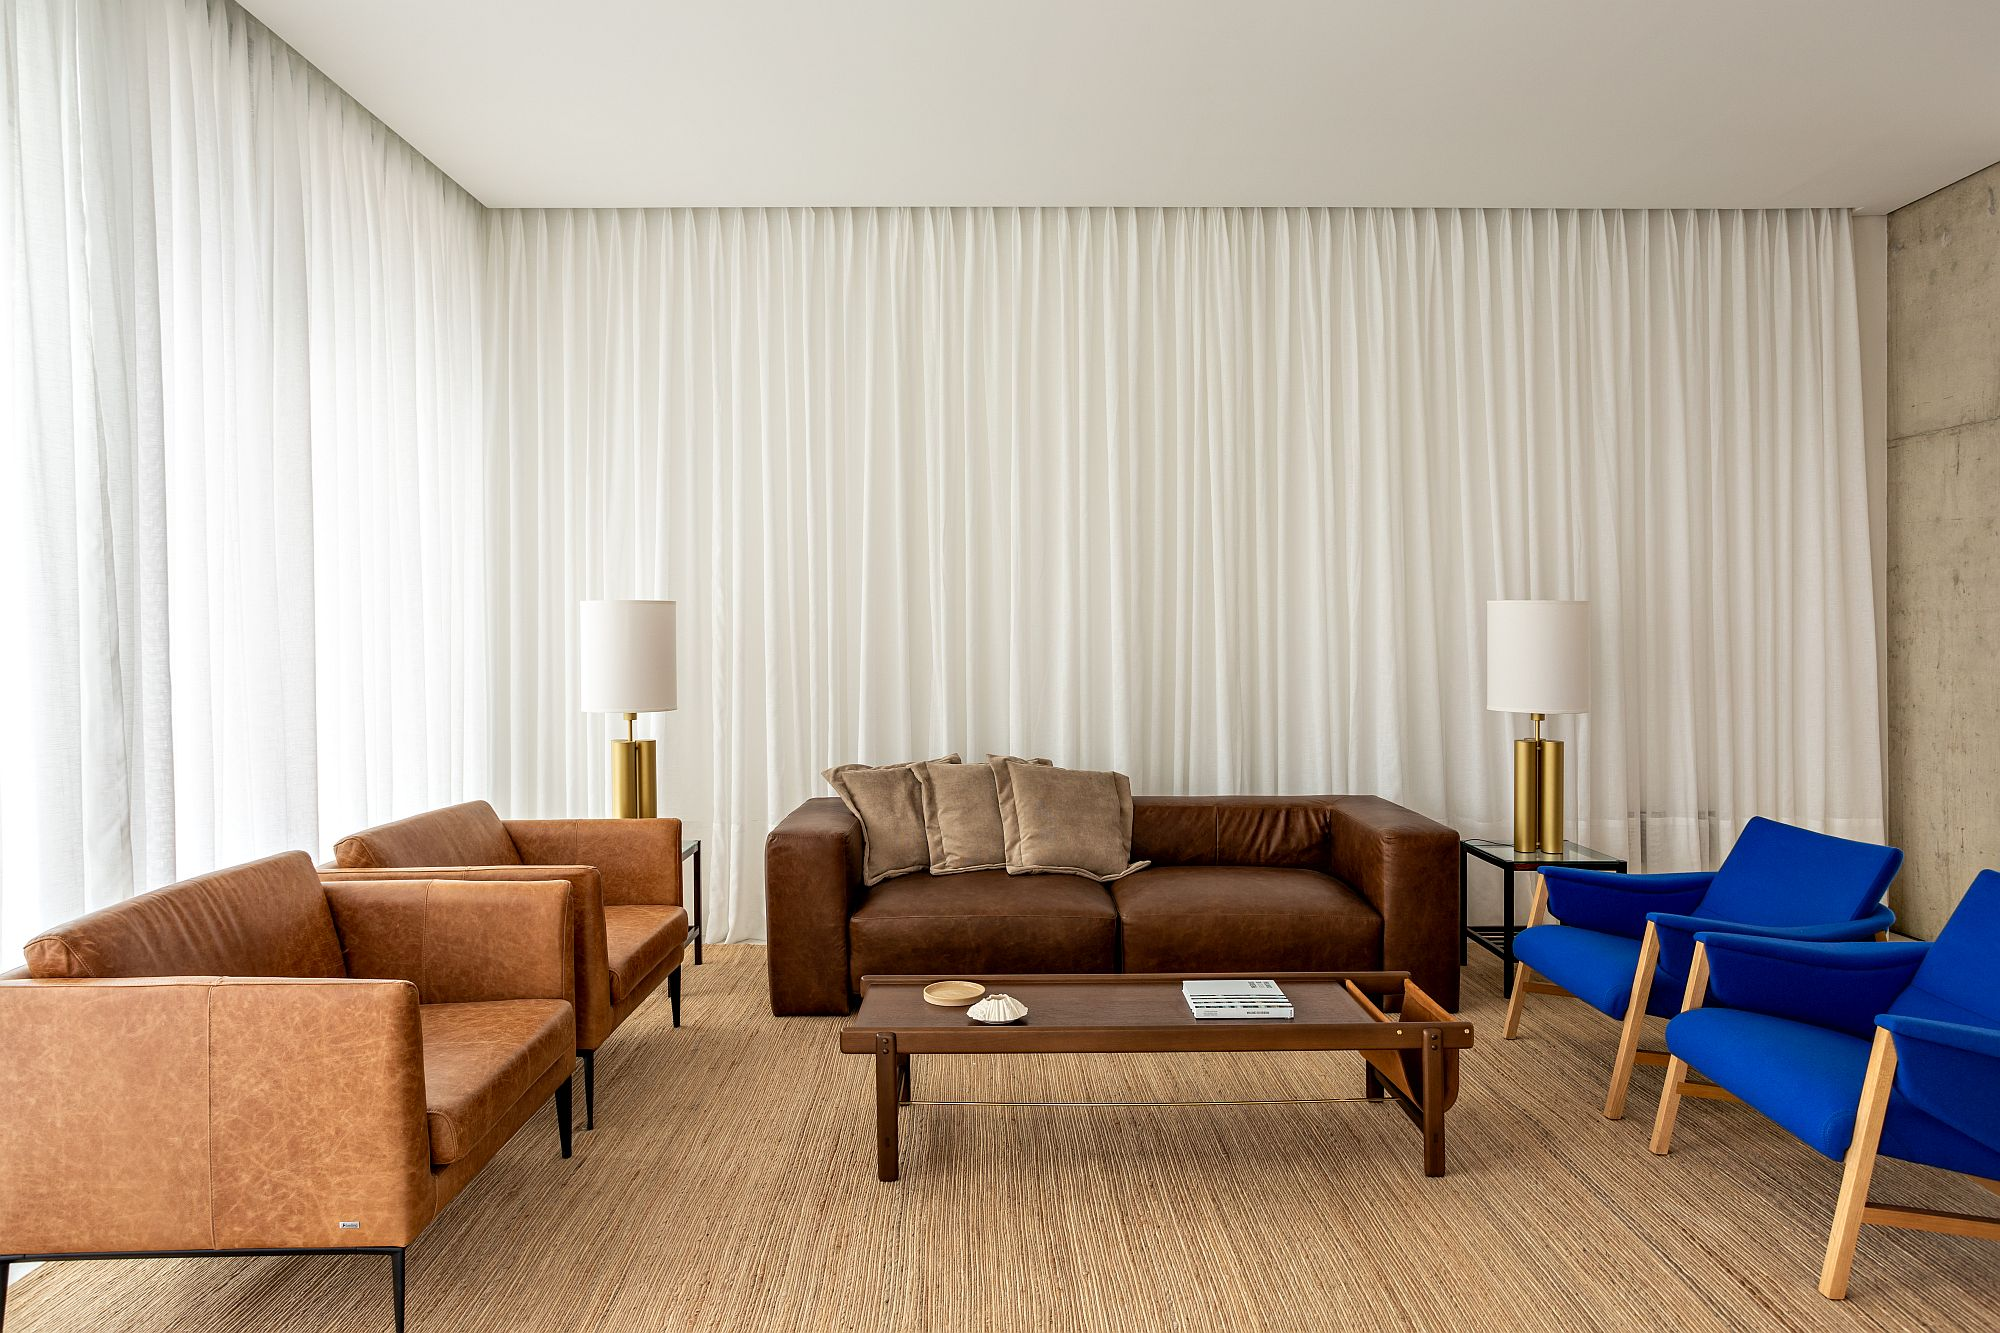 White drapes around the sitting area ensure there is ample privacy